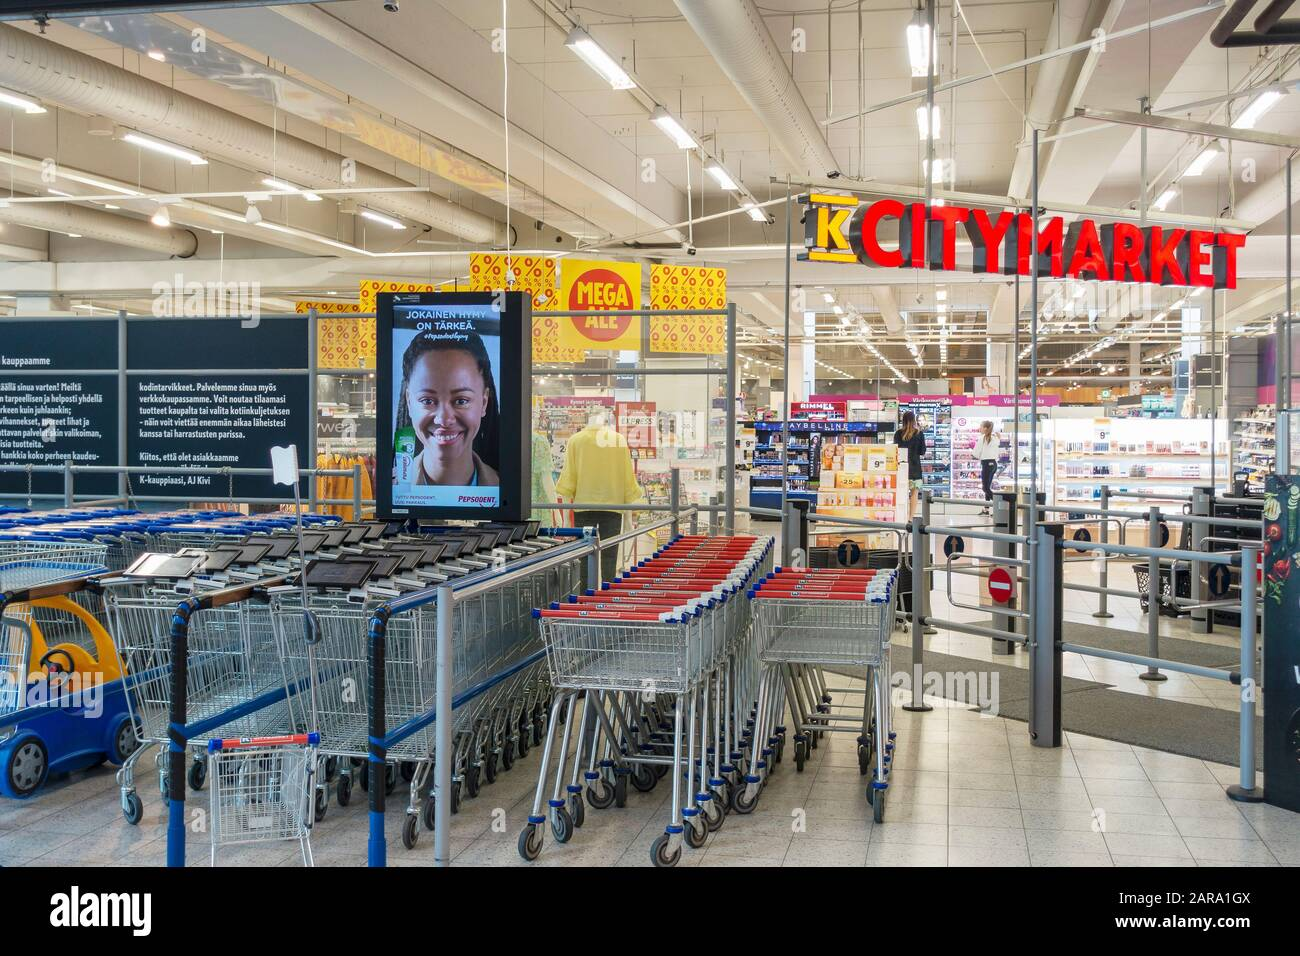 K-Citymarket Warehouse in Hämeenlinna Finland Stock Photo